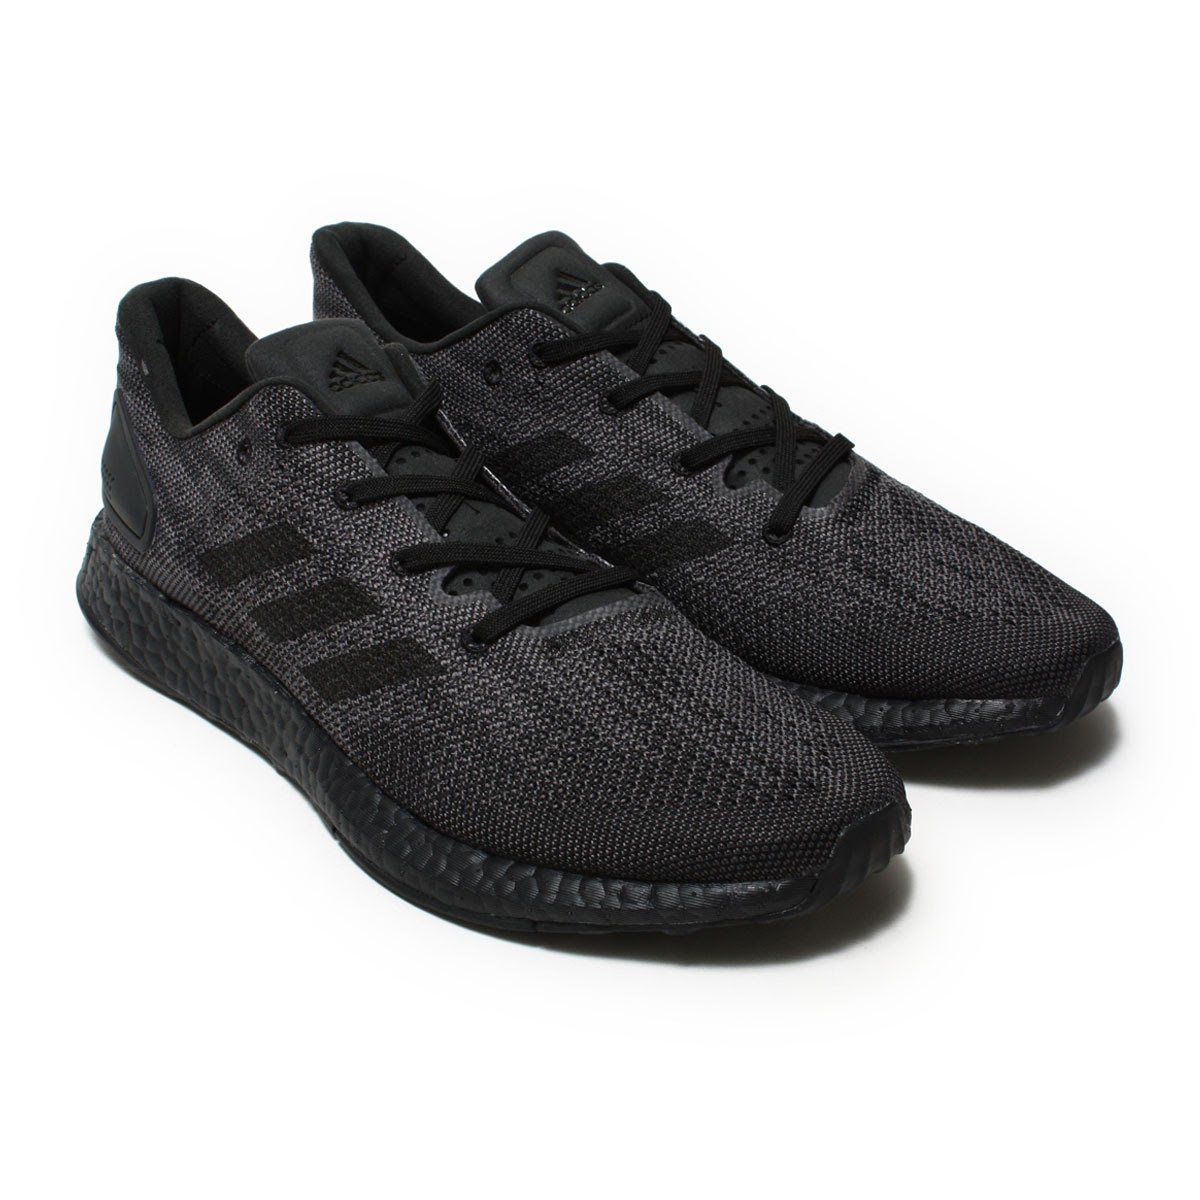 adidas Originals PureBOOST DPR LTD(アディダス オリジナルス ピュアブースト DPR LTD)Core Black/Core Black/Carbon18SS-I